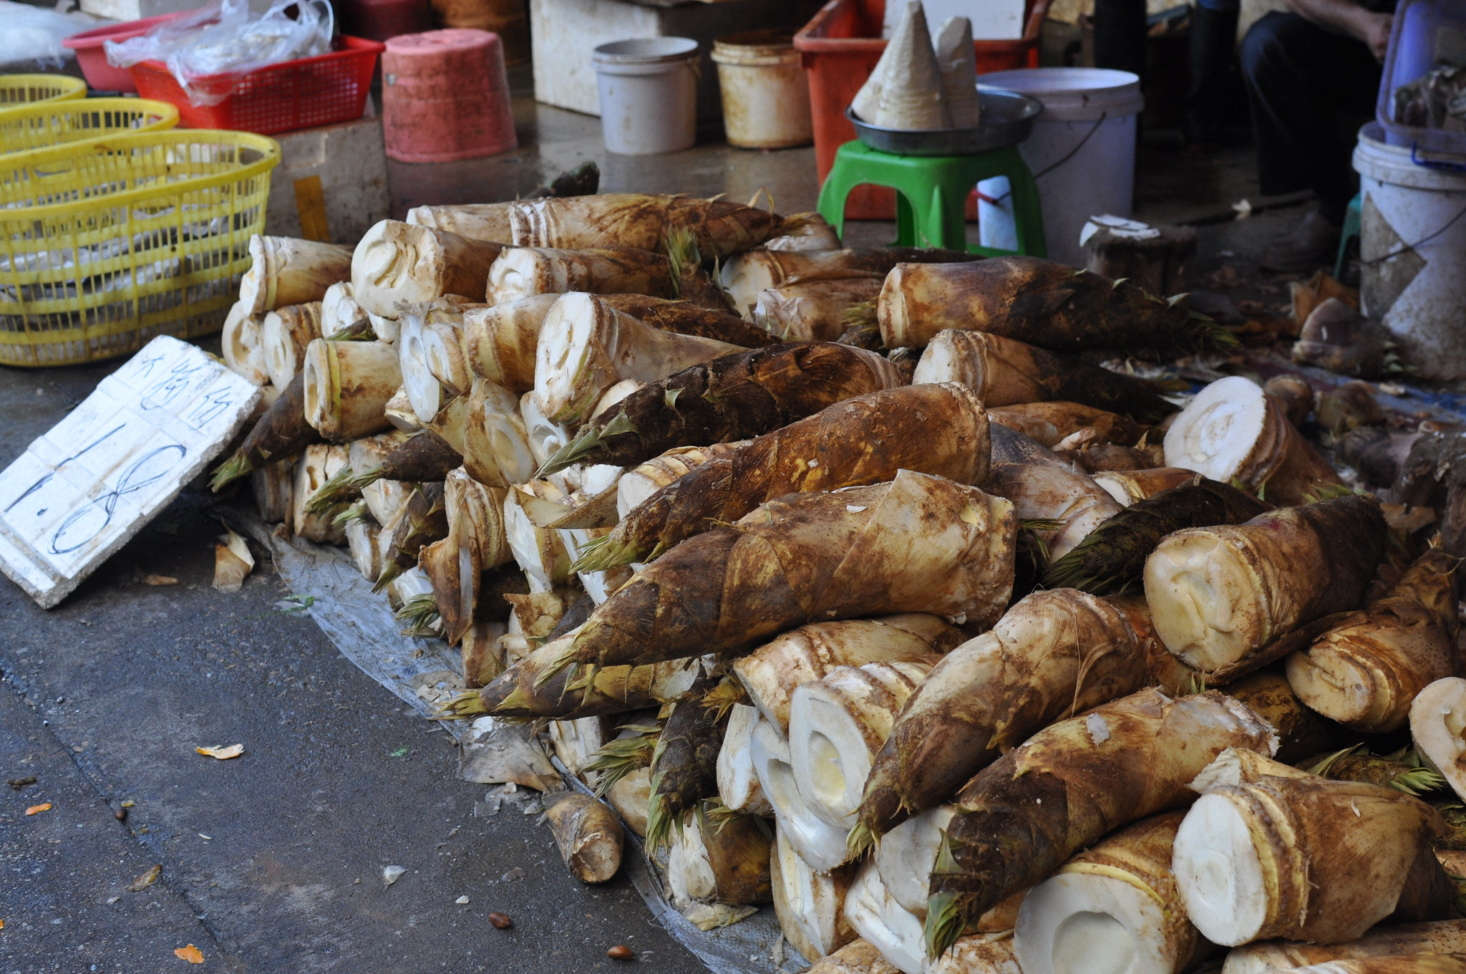 Bamboo shoots for sale at a market in Xiamen, China. Photograph by Scott Edmunds via Flickr.